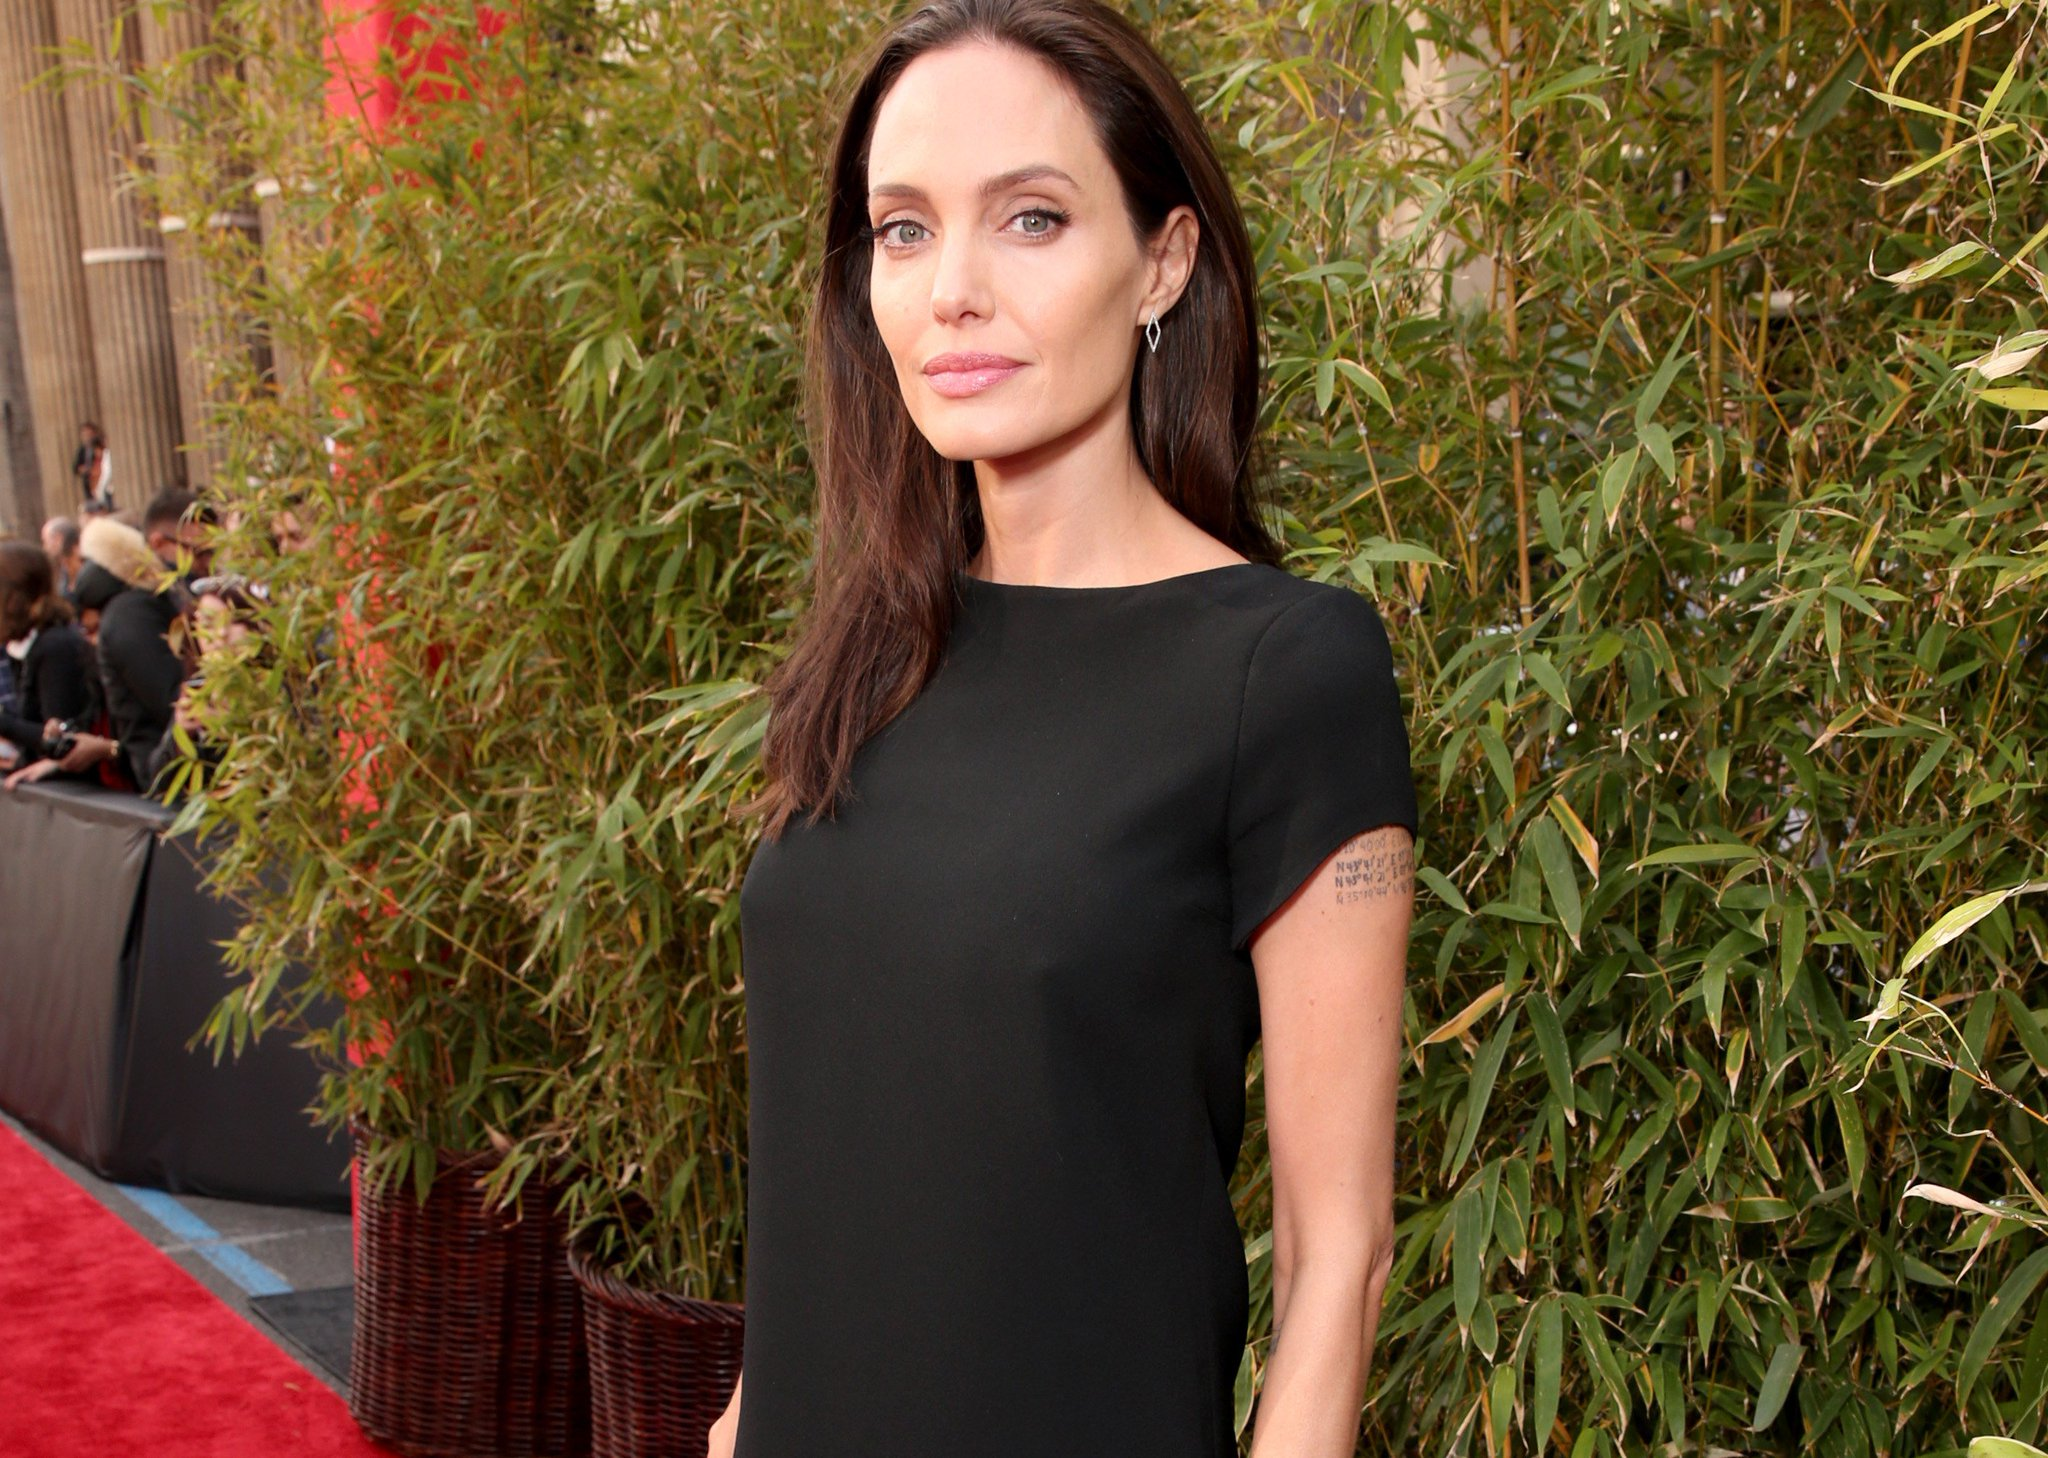 Angelina Jolie reveals she was diagnosed with Bell's palsy: https://t.co/VQTK1UzeQN https://t.co/M3rKBTanYl